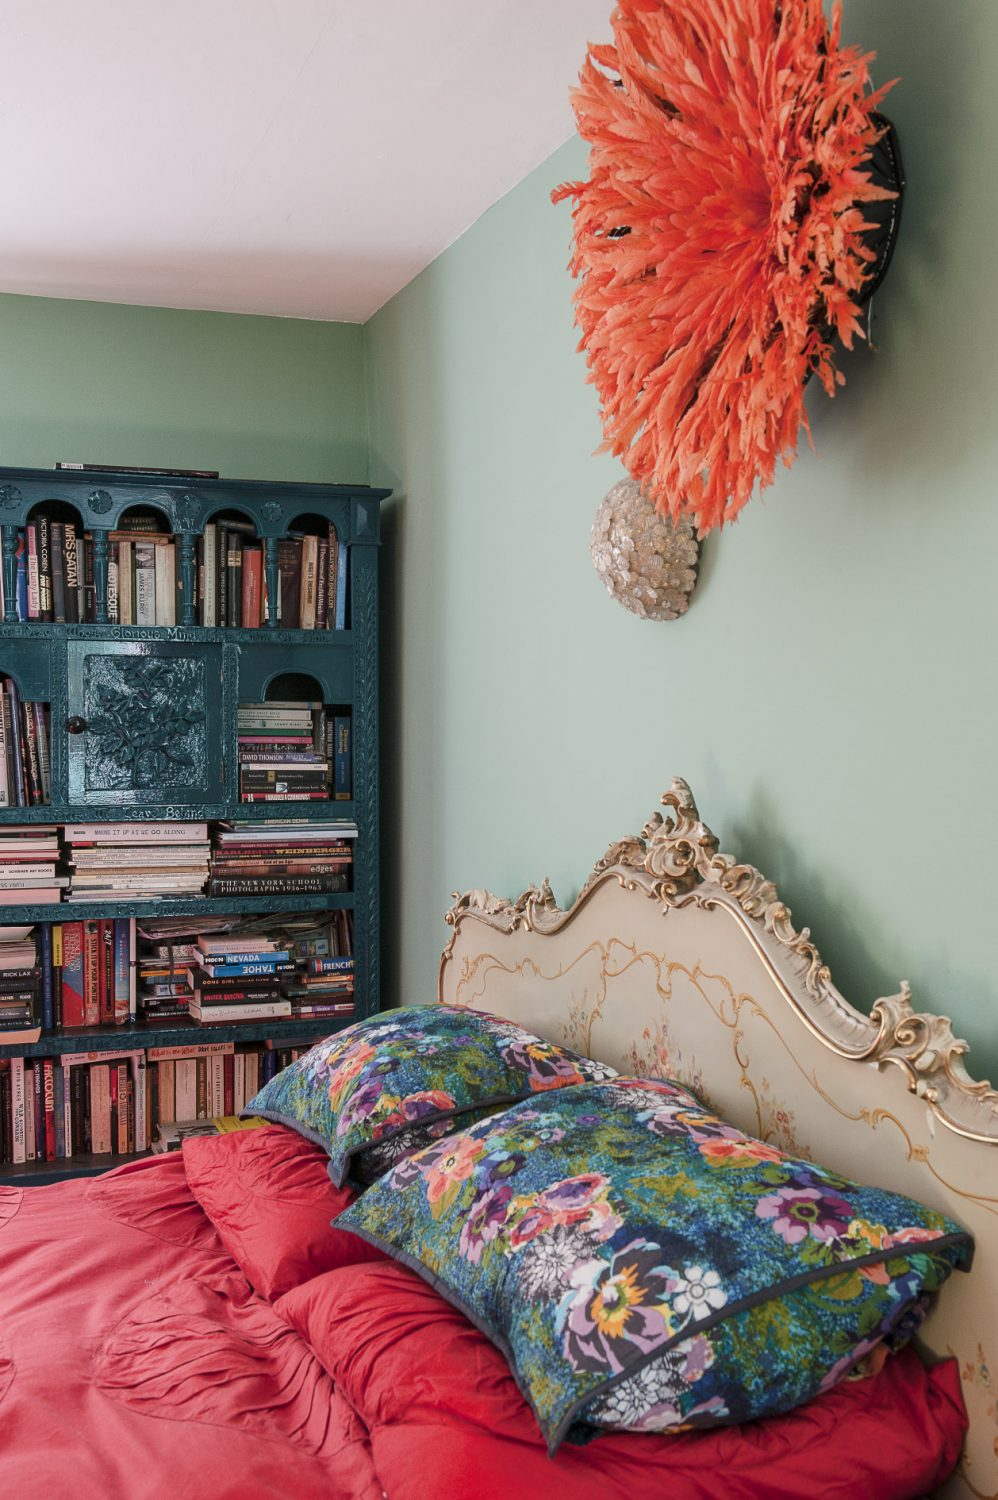 The bedroom features a 1950s Italian gilded bed above which is mounted an orange feathered headdress from the Cameroon